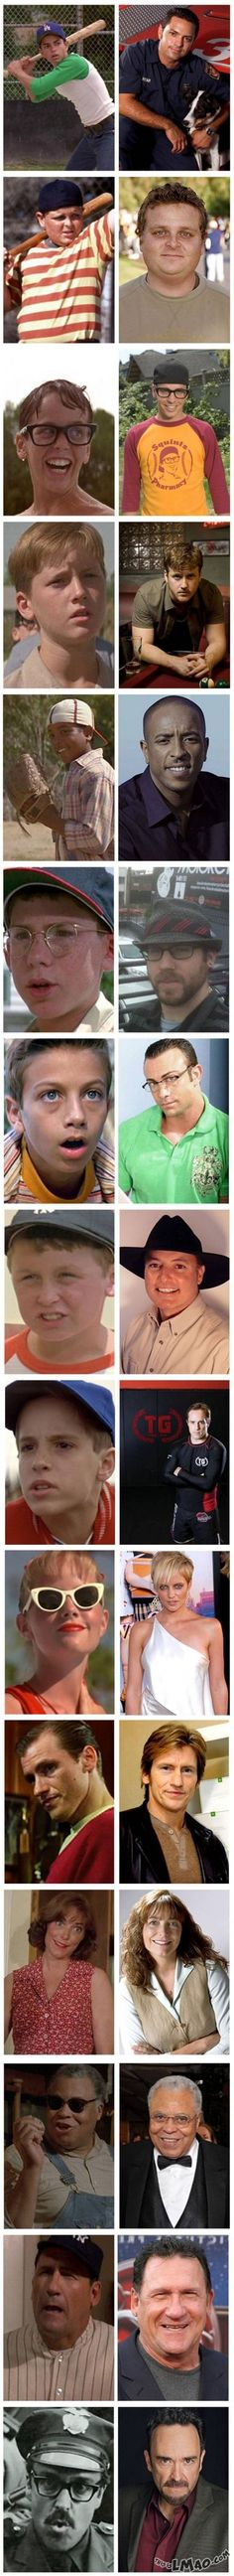 Funny picture: Sandlot then and now